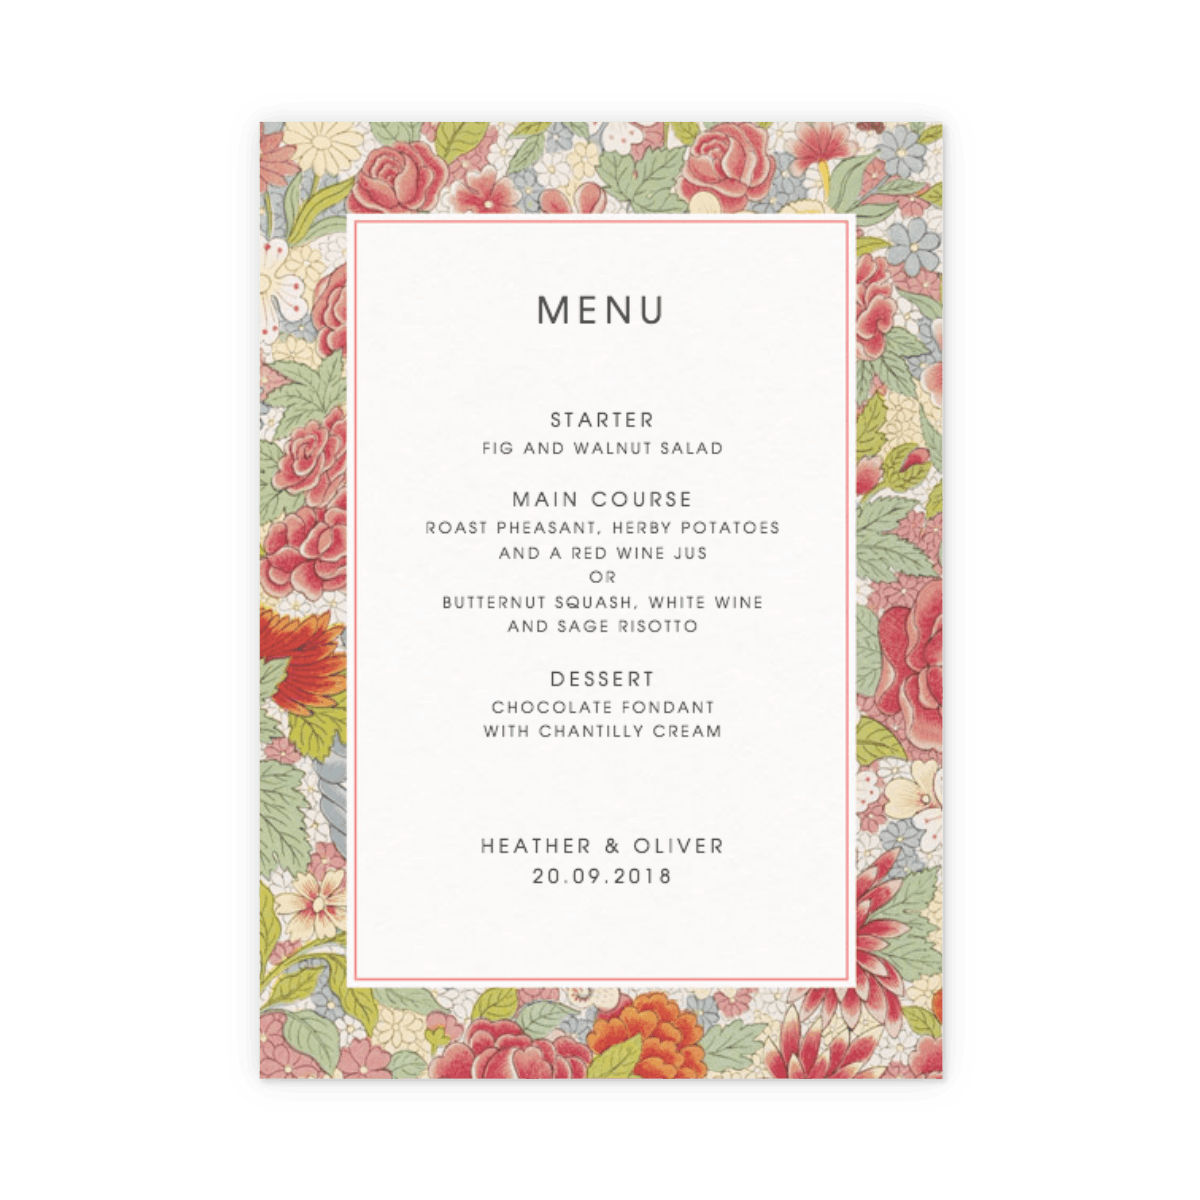 Https%3a%2f%2fwww.papier.com%2fproduct image%2f20196%2f4%2fred roses 5169 avant 1553549901.png?ixlib=rb 1.1